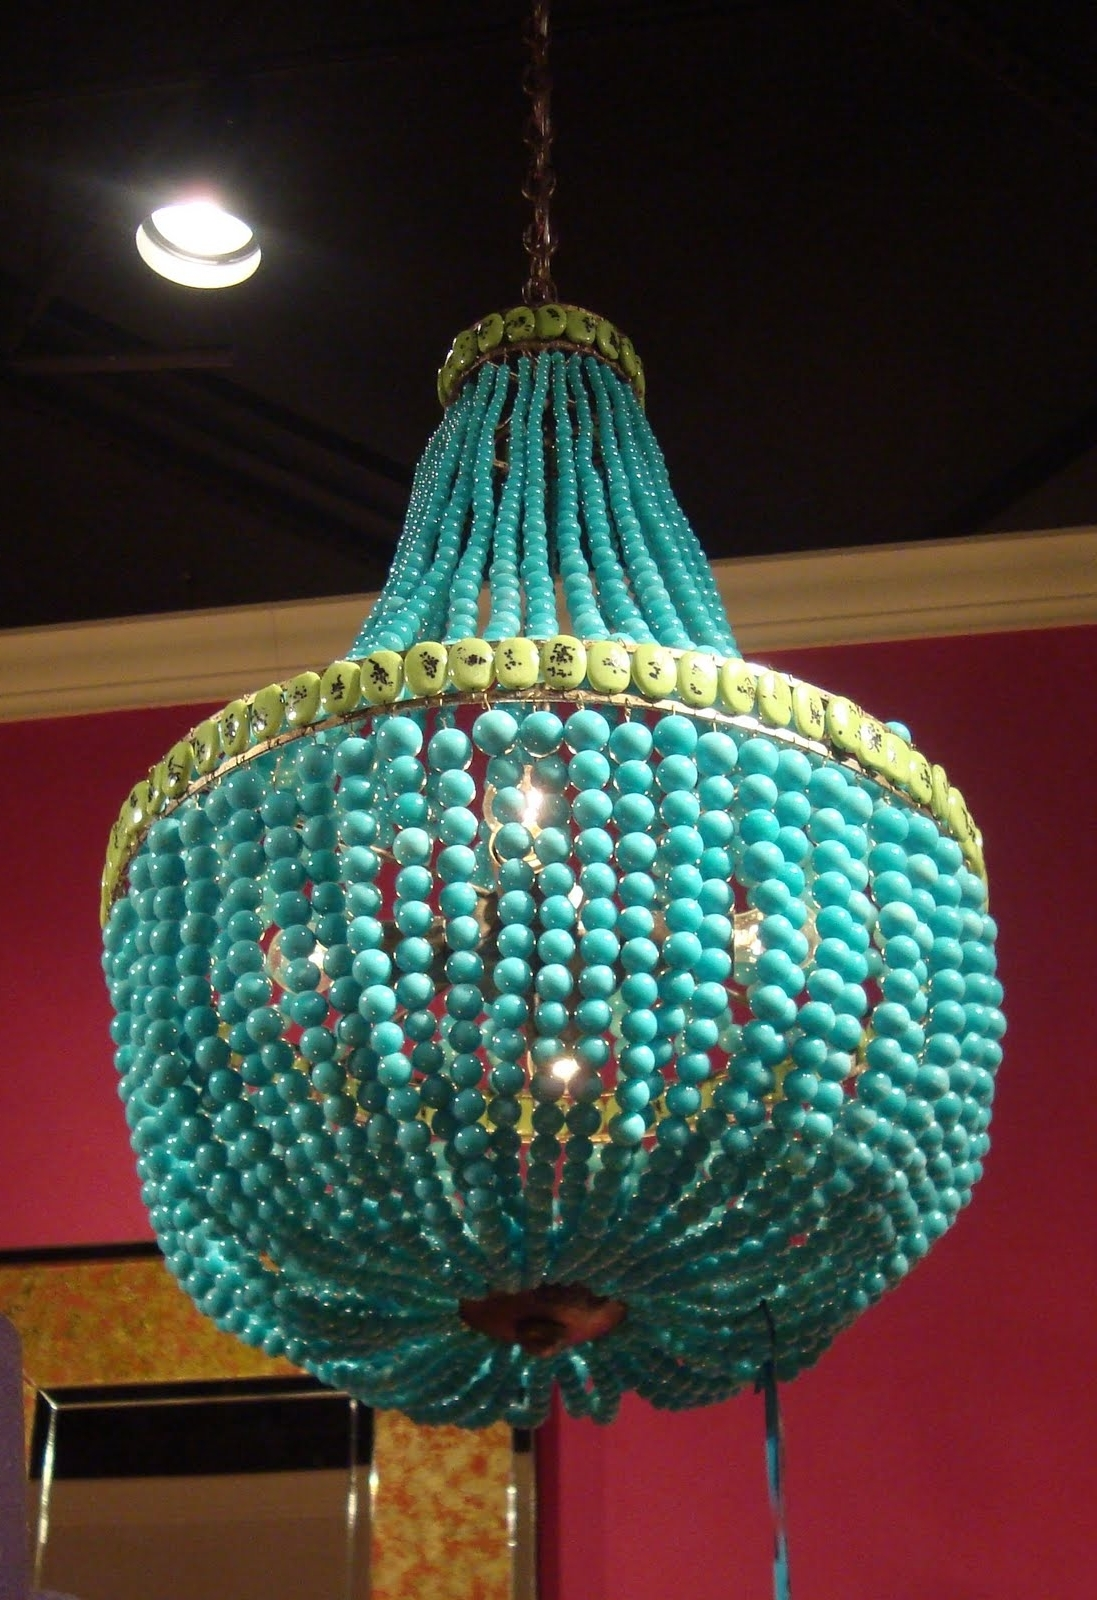 Turquoise Bubble Chandeliers Throughout Most Recently Released Turquoise Chandelier Lighting (View 10 of 20)